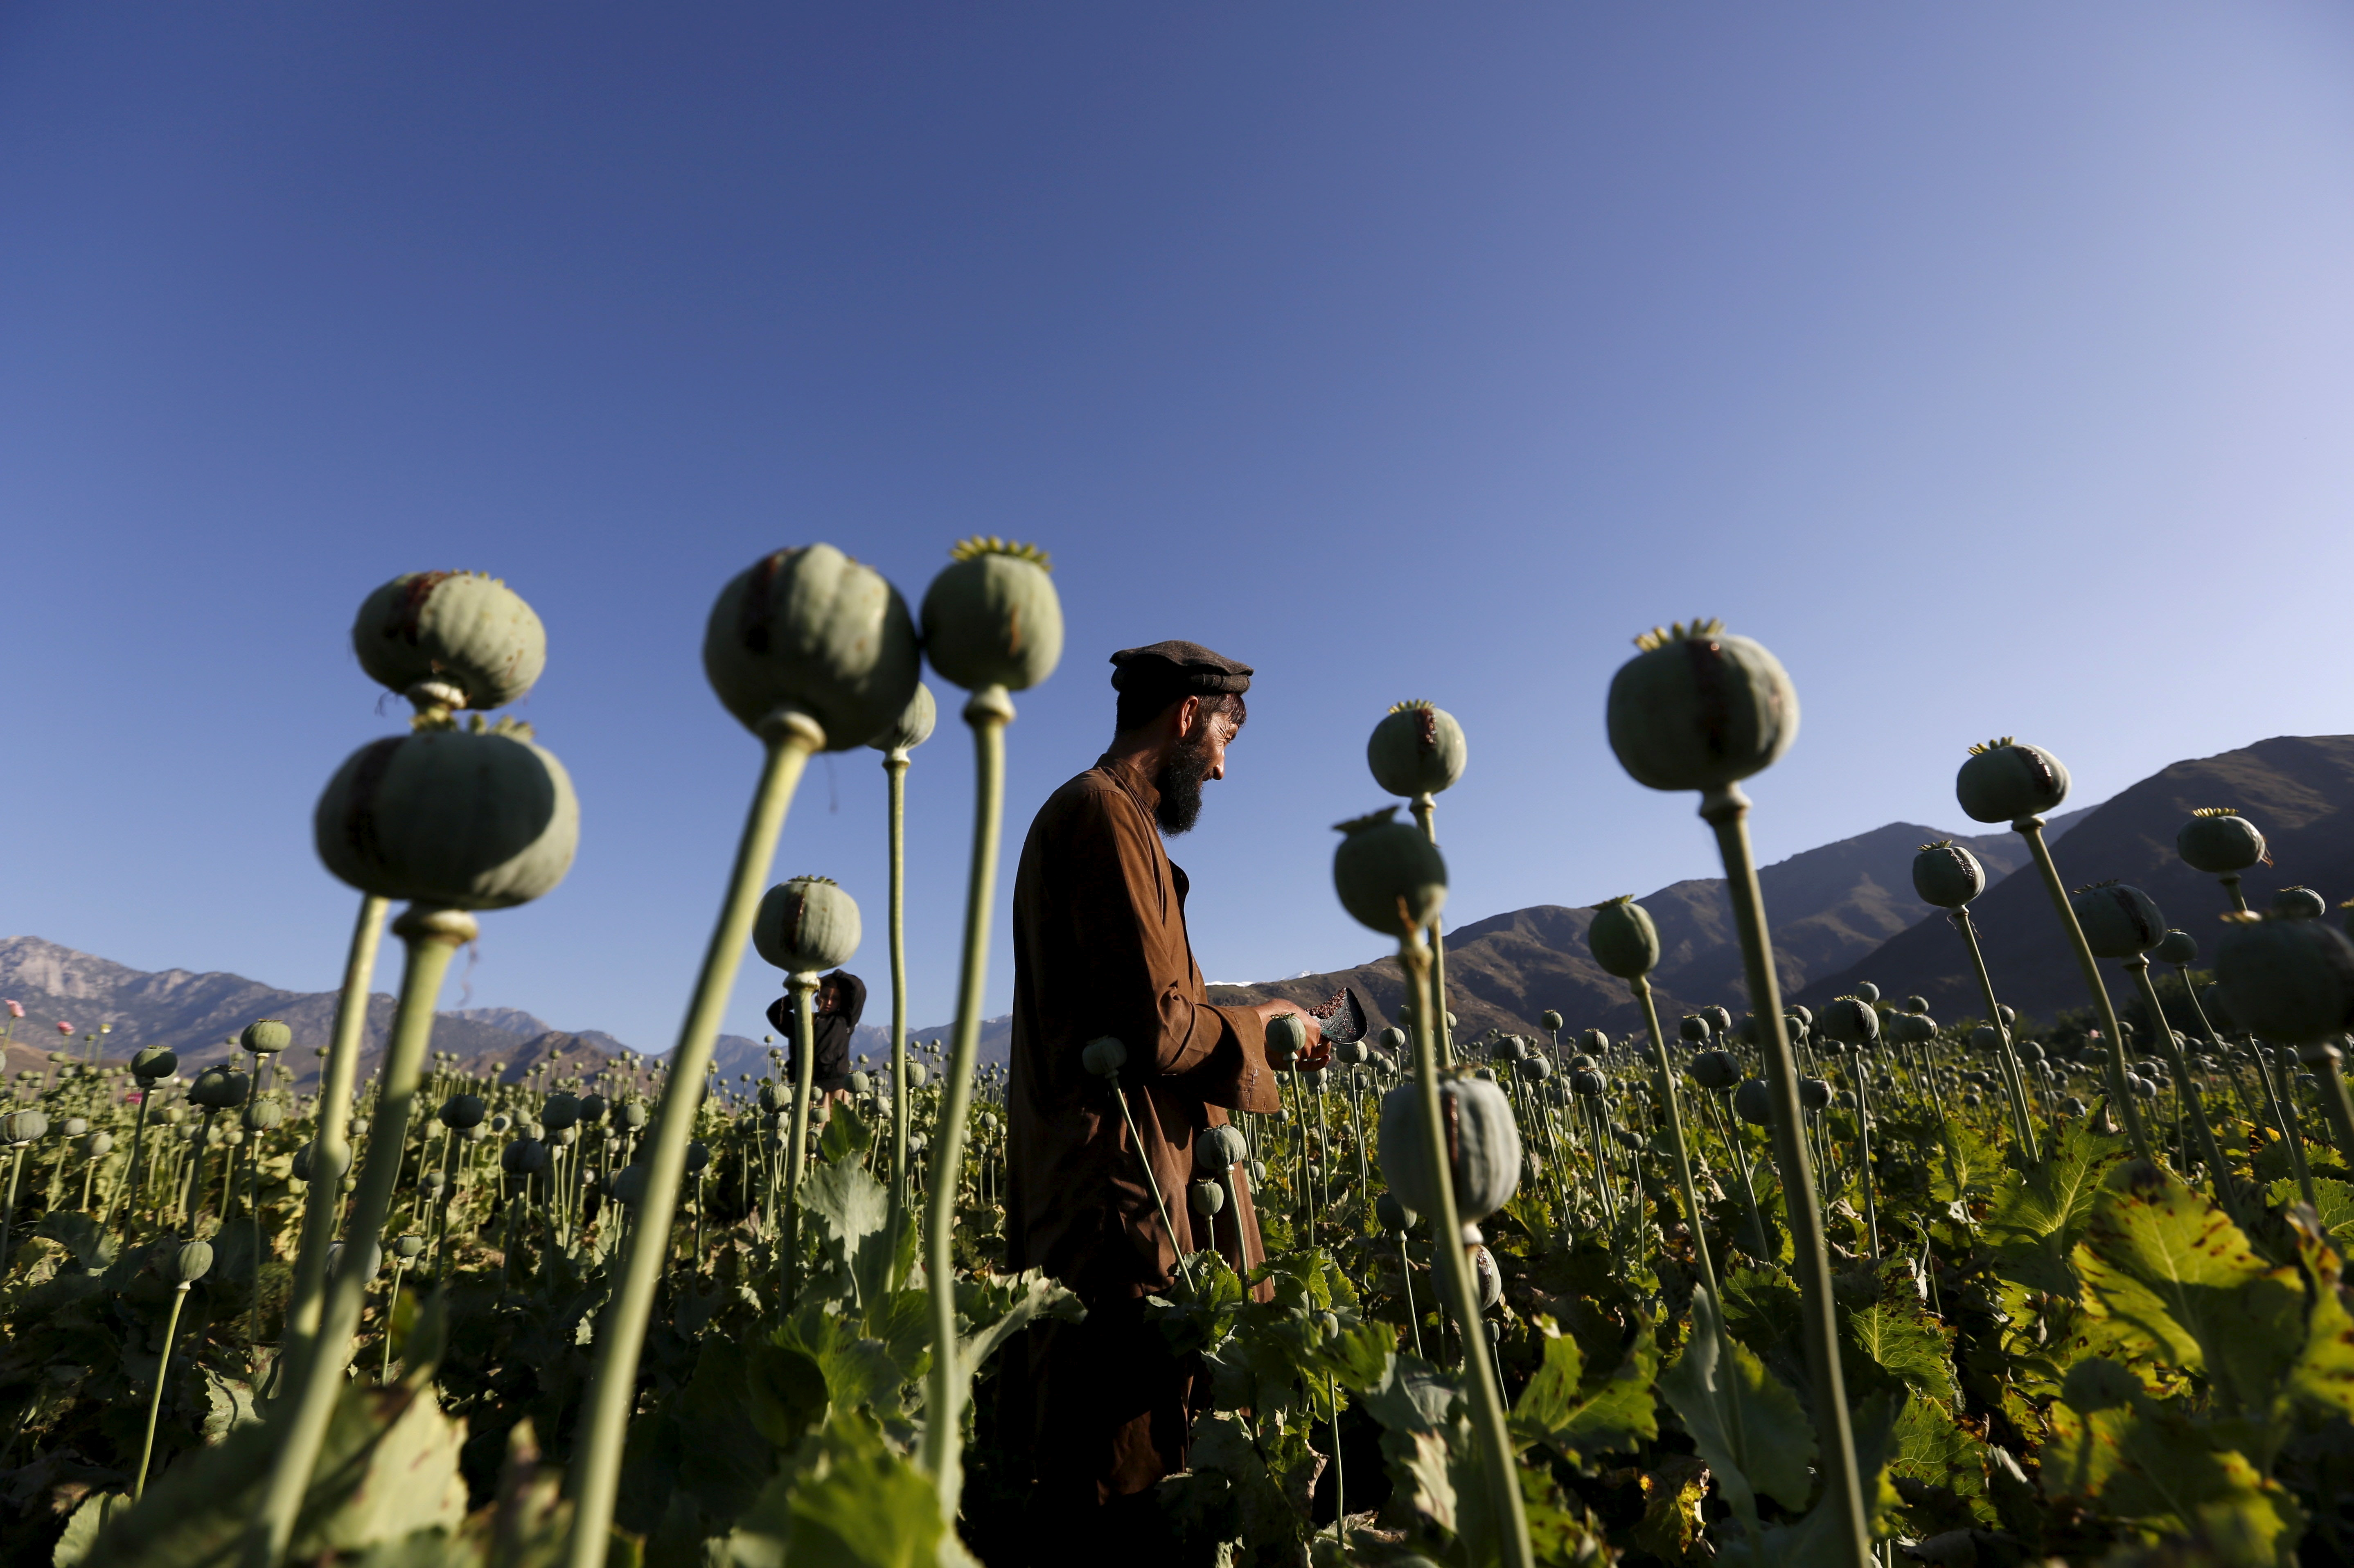 An Afghan man works on a poppy field in Nangarhar province, Afghanistan April 20, 2016. REUTERS/Stringer/File Photo